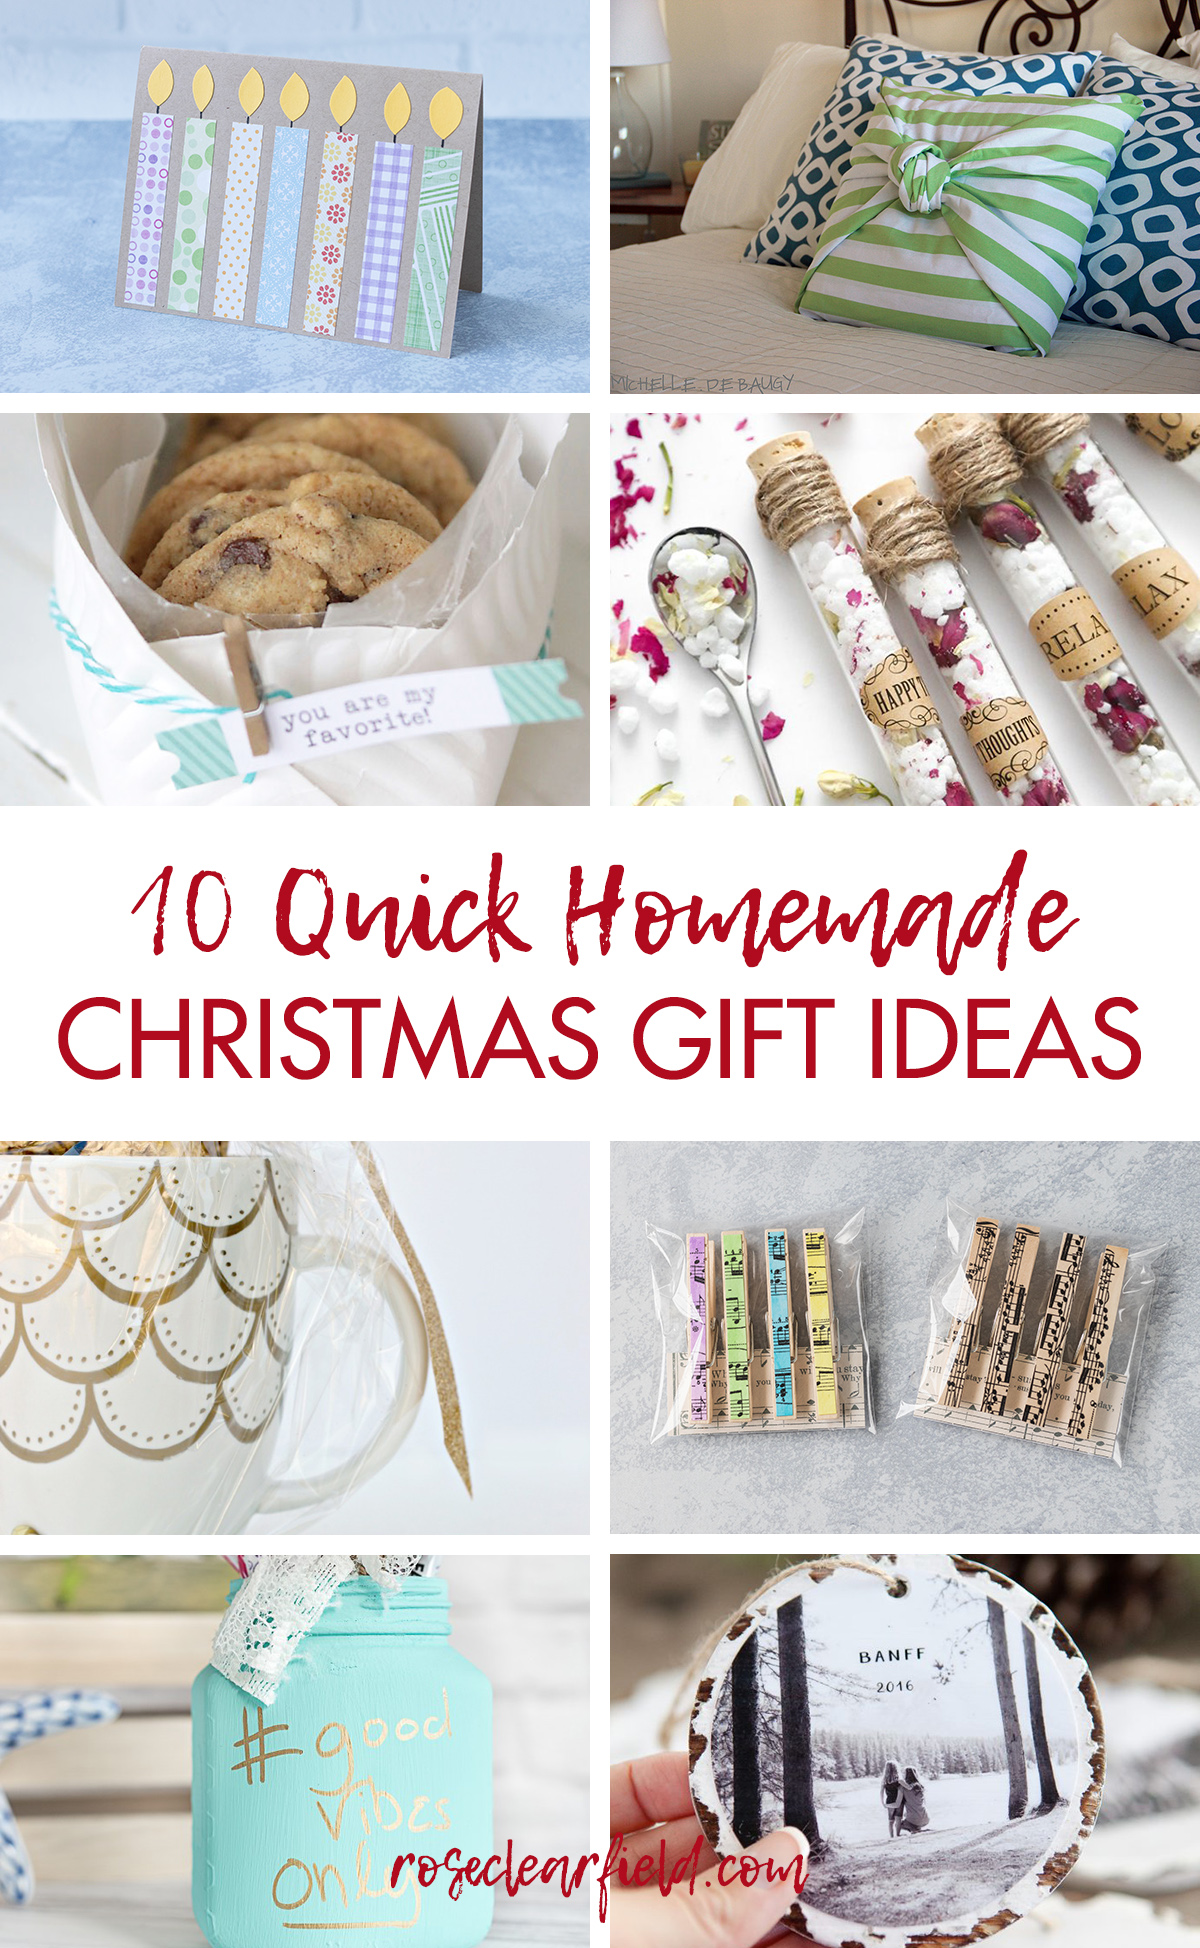 Last Minute Homemade Christmas Gift Ideas Rose Clearfield